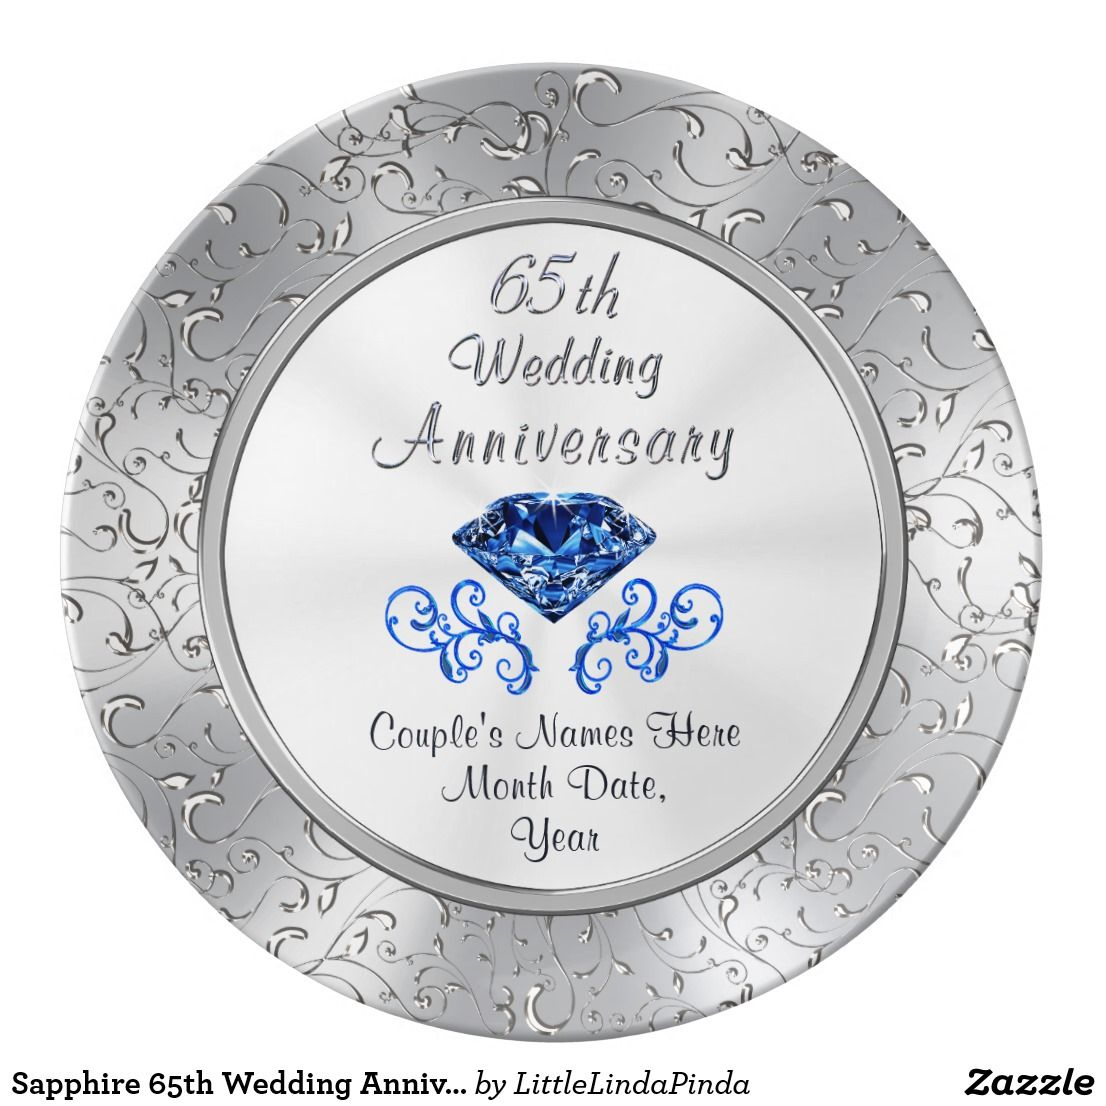 Sapphire 65th Wedding Anniversary Gift Personalize Dinner